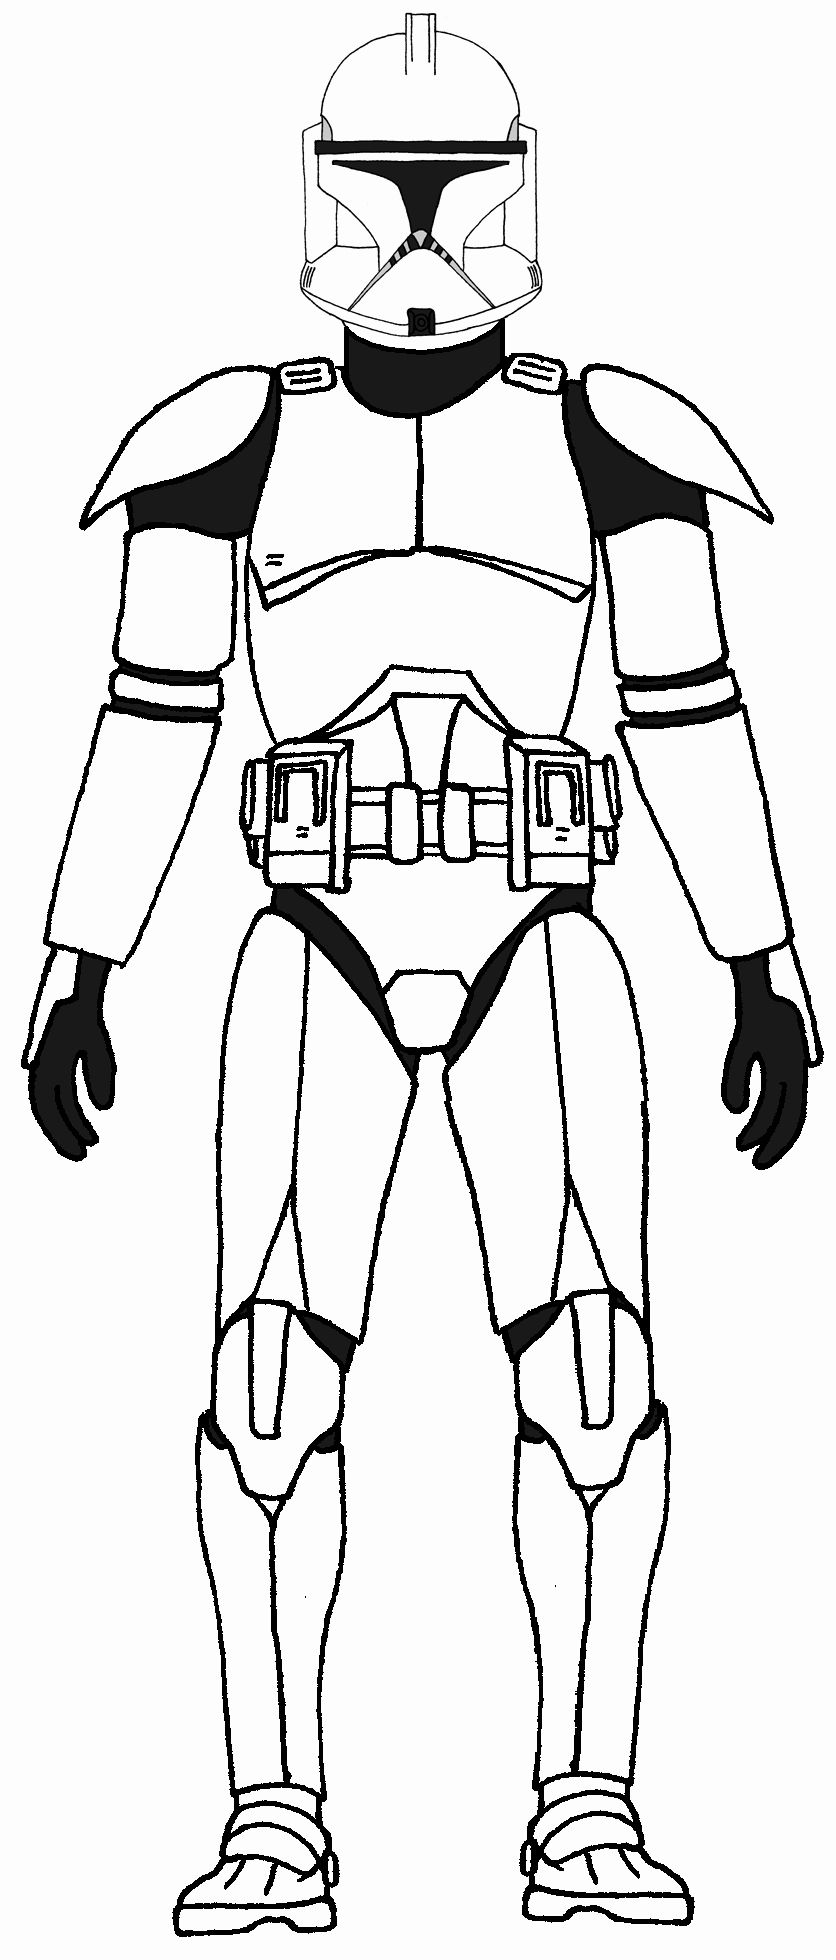 28 Clone Trooper Coloring Page In 2020 Clone Trooper Star Wars